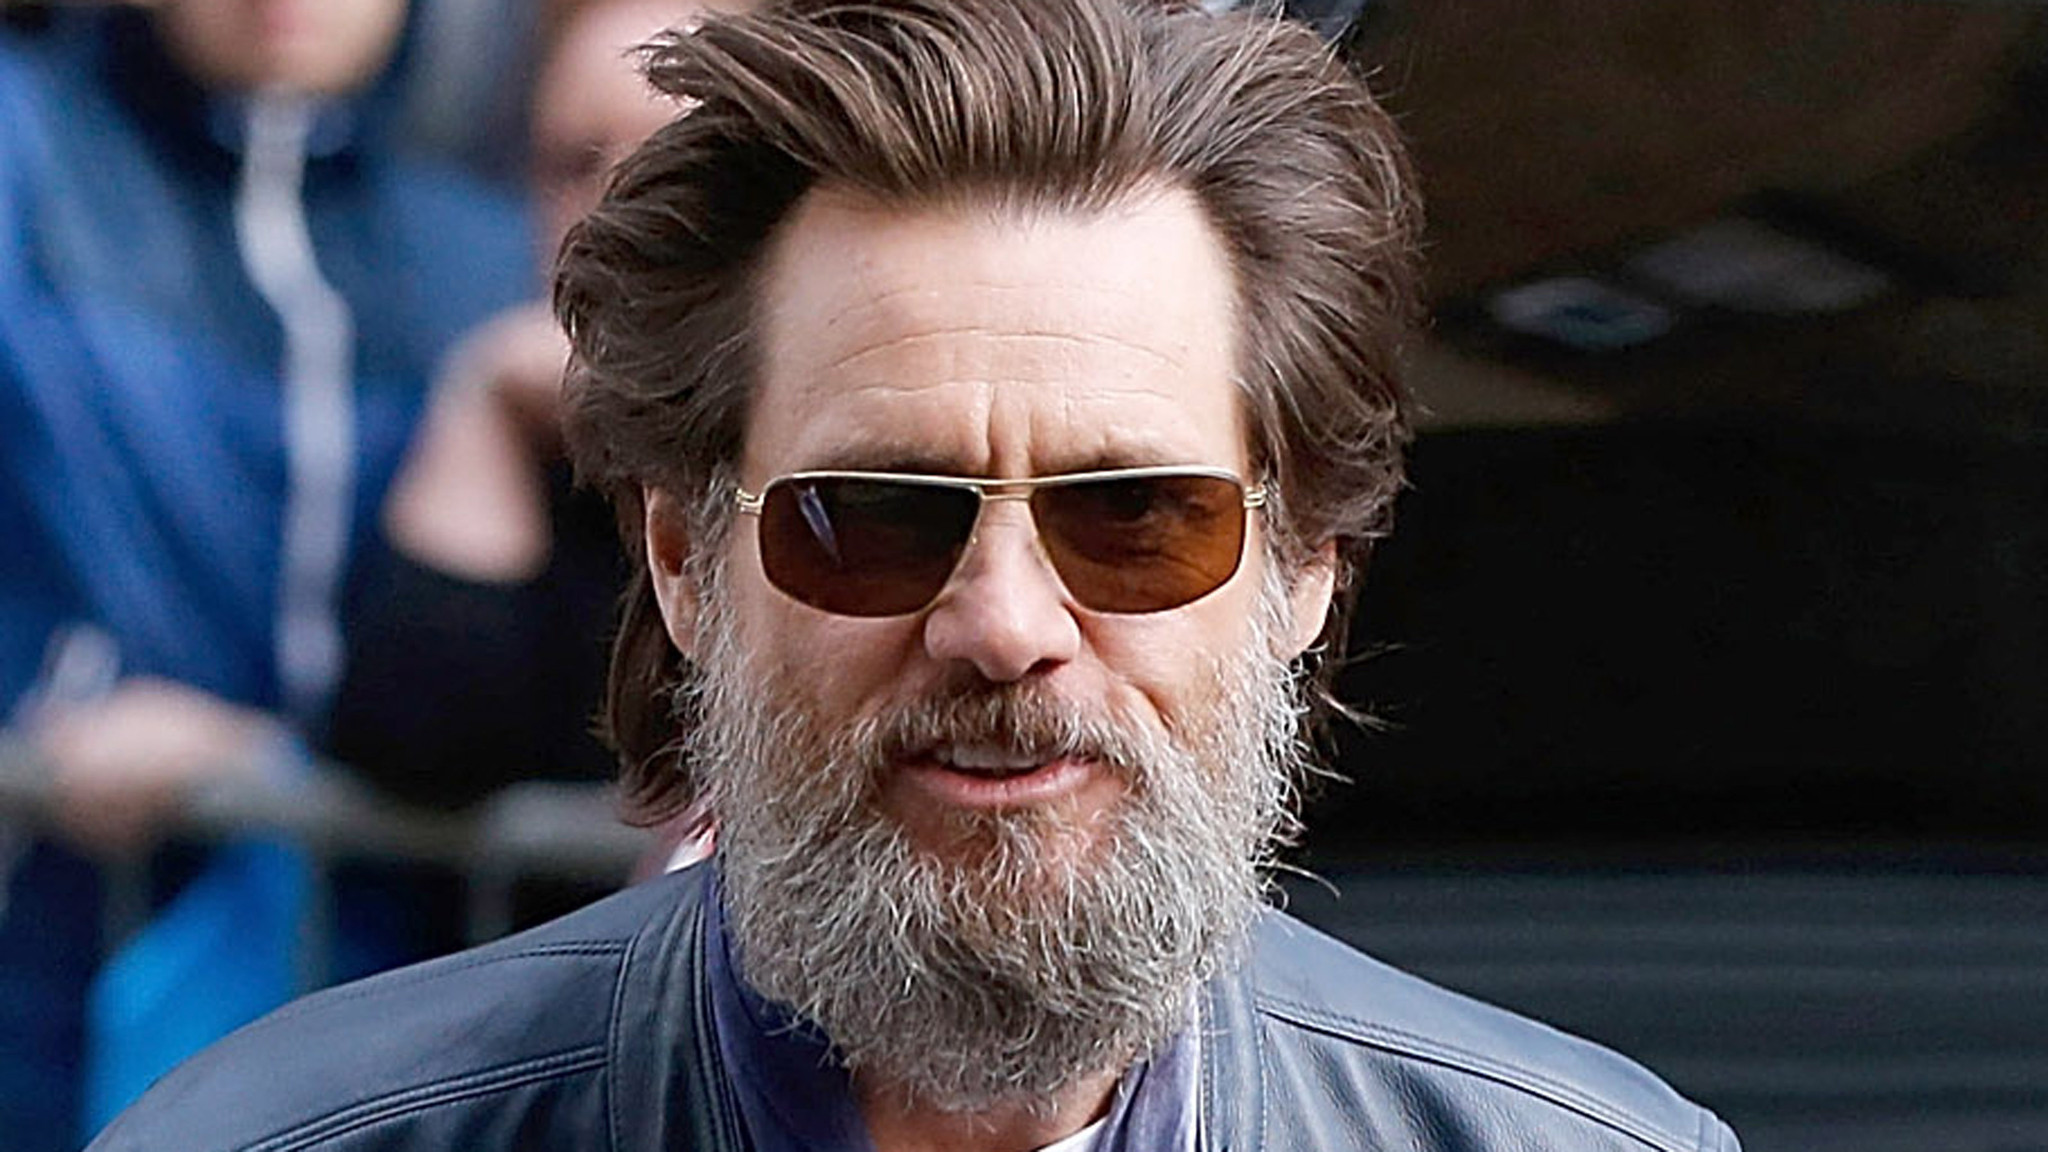 la-et-mg-jim-carrey-girlfriend-cathriona-white-no-breakup-2015100.la-et-mg-jim-carrey-girlfriend-cathriona-white-no-breakup-20151005